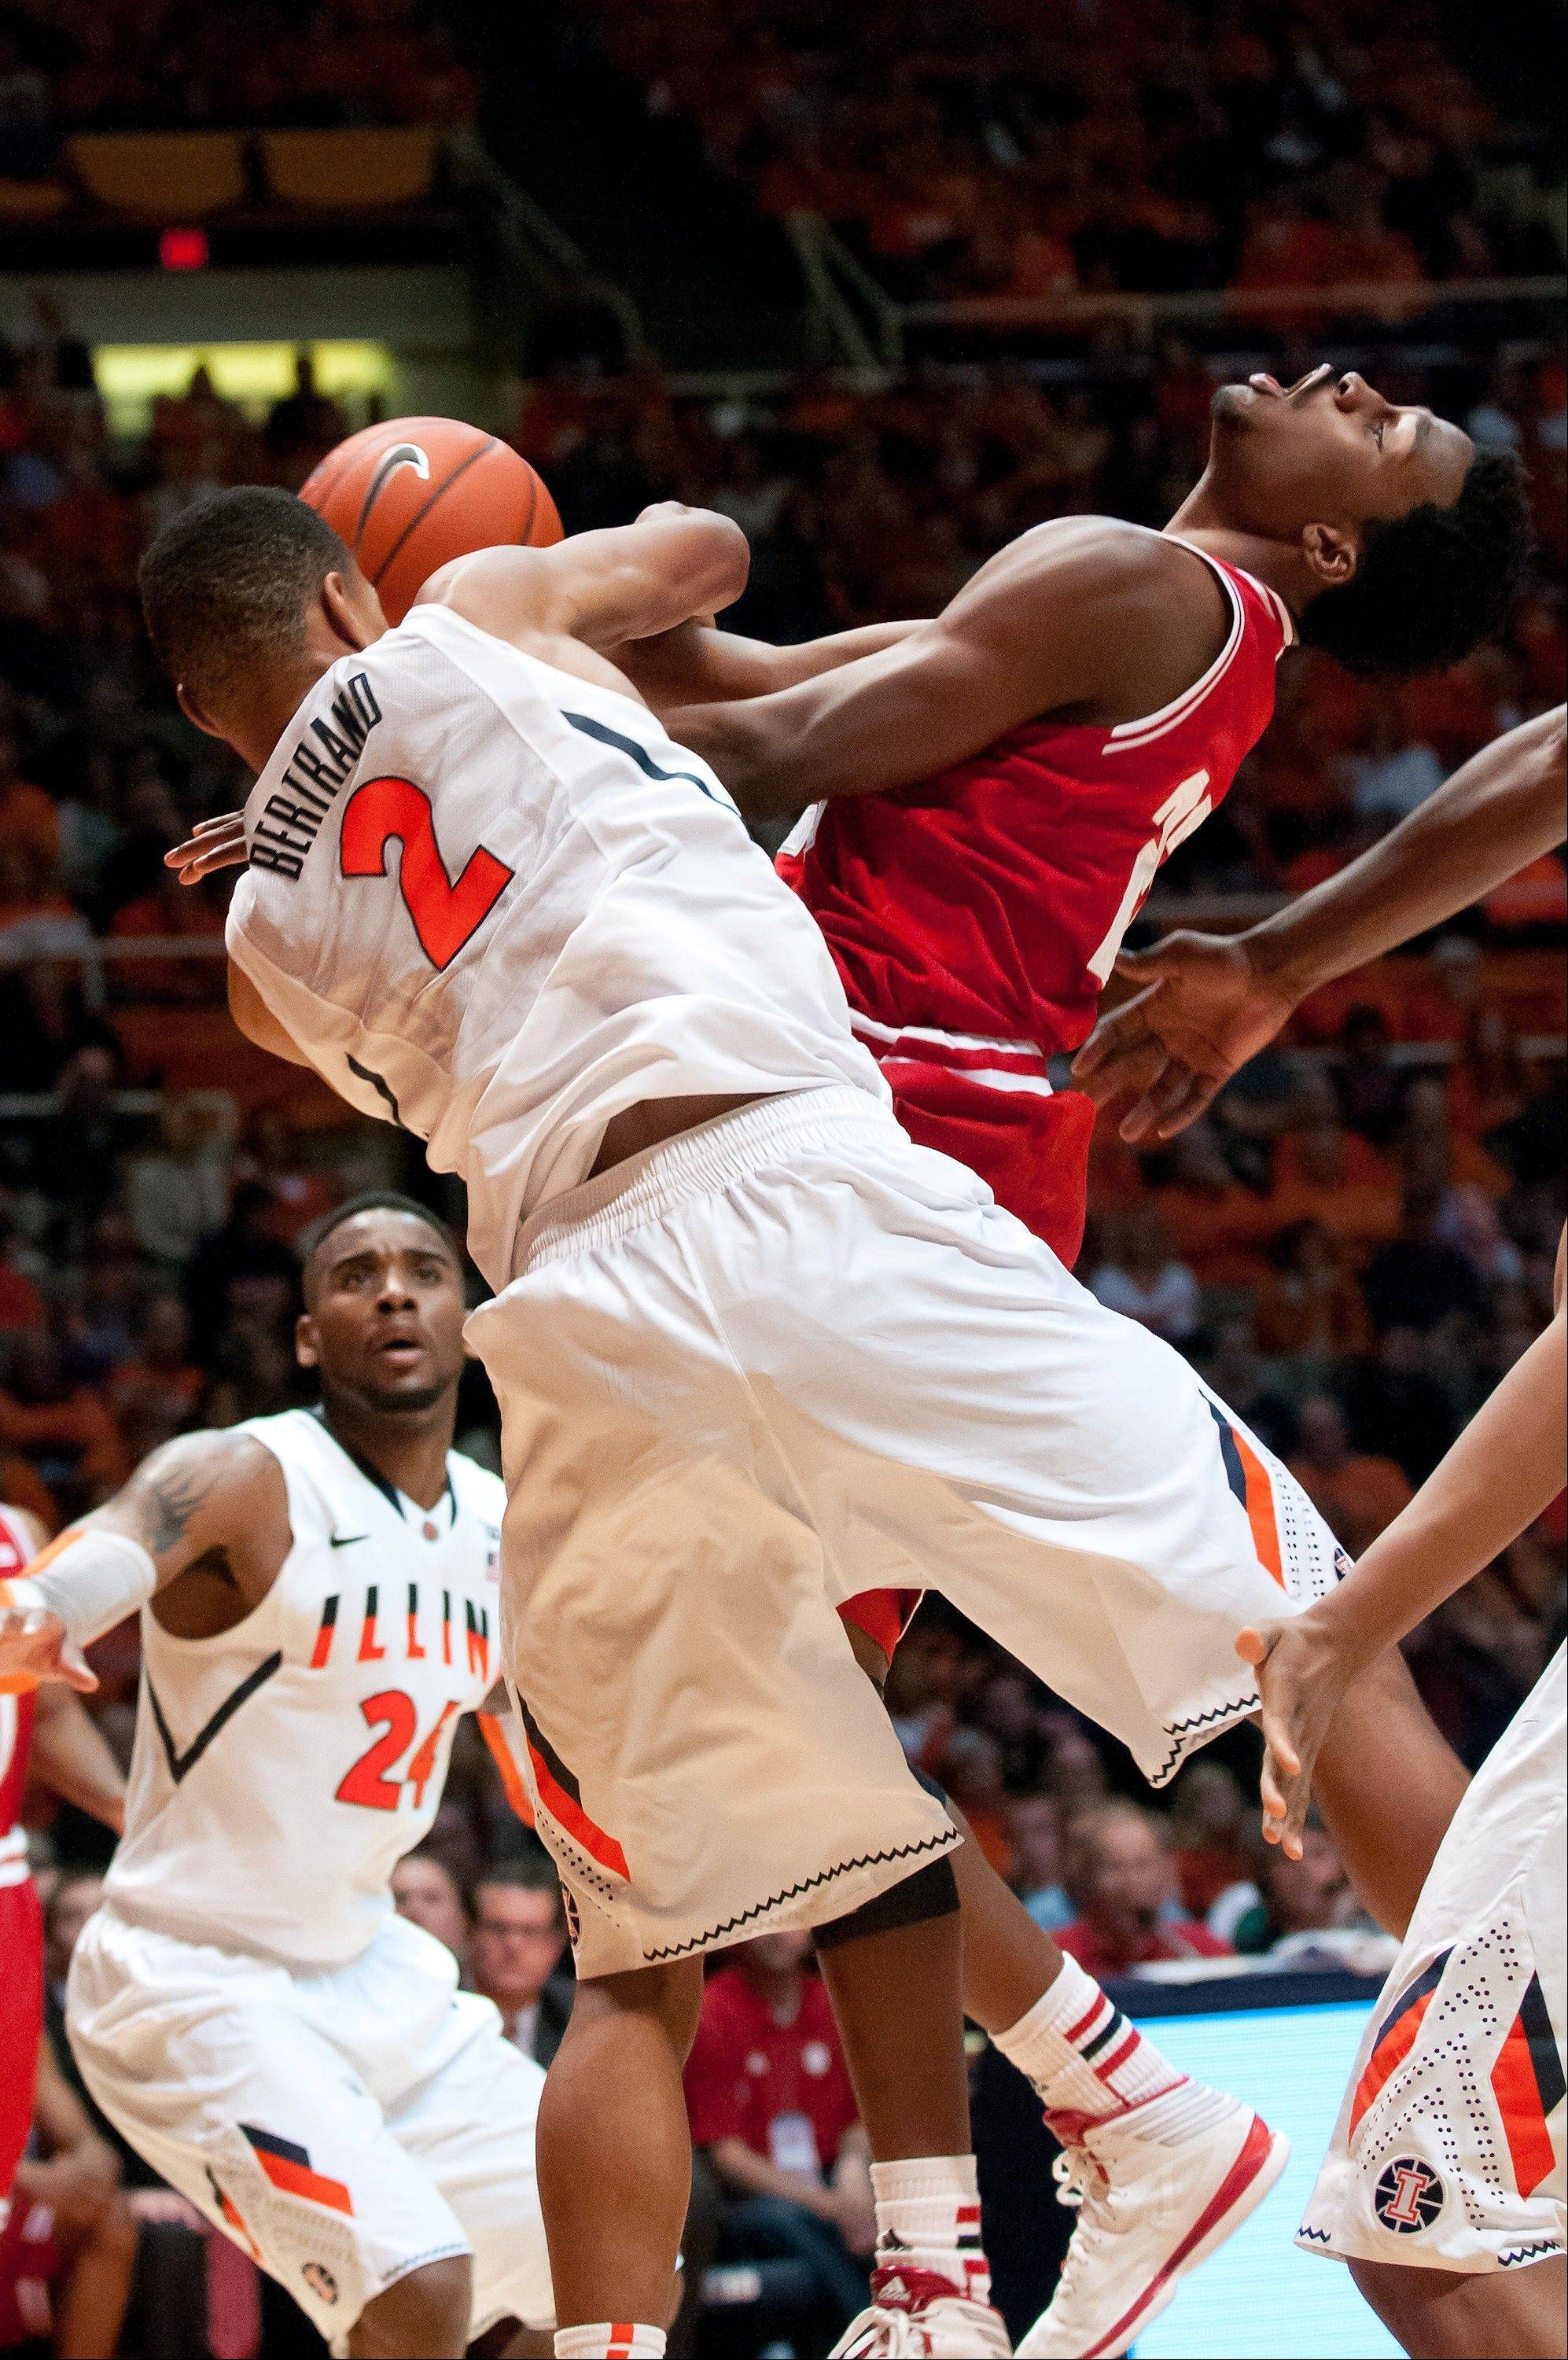 Indiana guard Stanford Robinson is fouled by Illinois guard Joseph Bertrand during the second half of Tuesday�s game in Champaign, Ill.